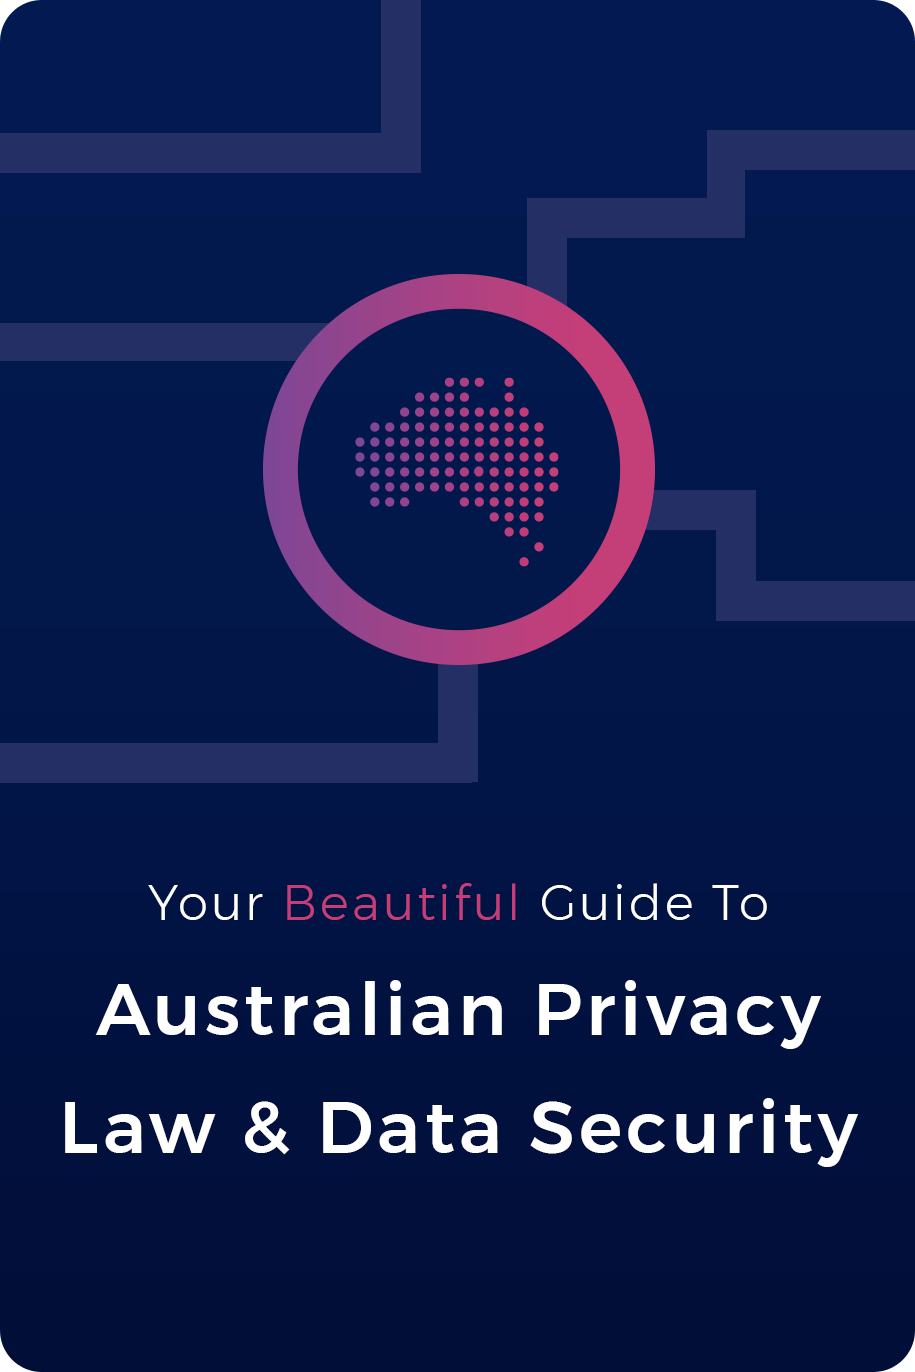 Your beautiful guide to Australian Privacy law and data security - ebook